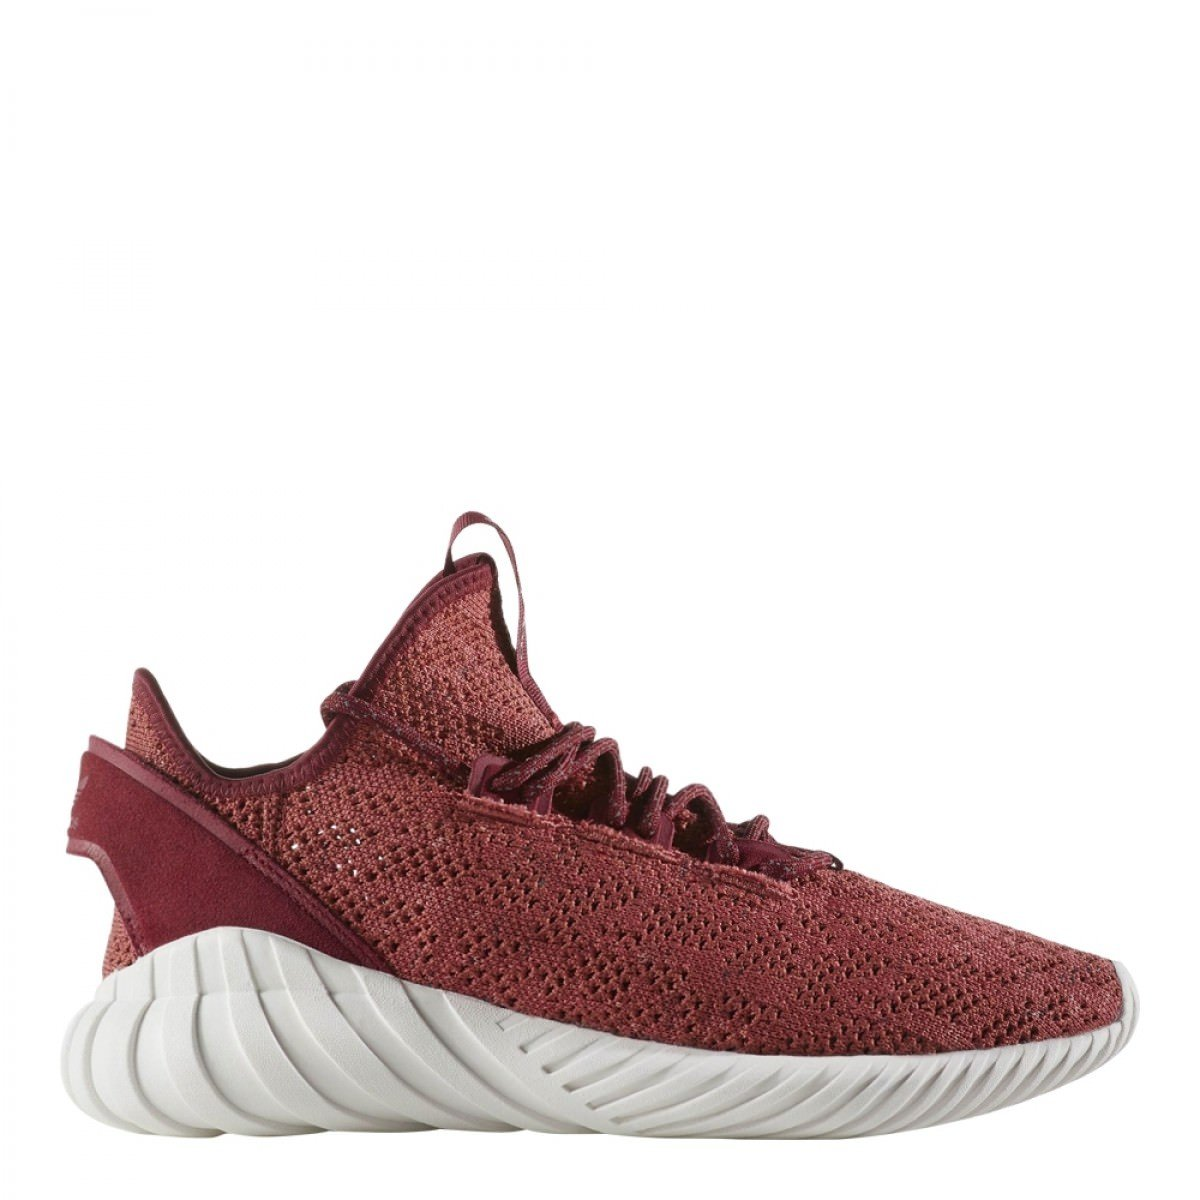 adidas Men's Tubular Doom Sock Pk Originals Running Shoe B076HH7PRH 11.5 M US|Mystery Red / Burgundy